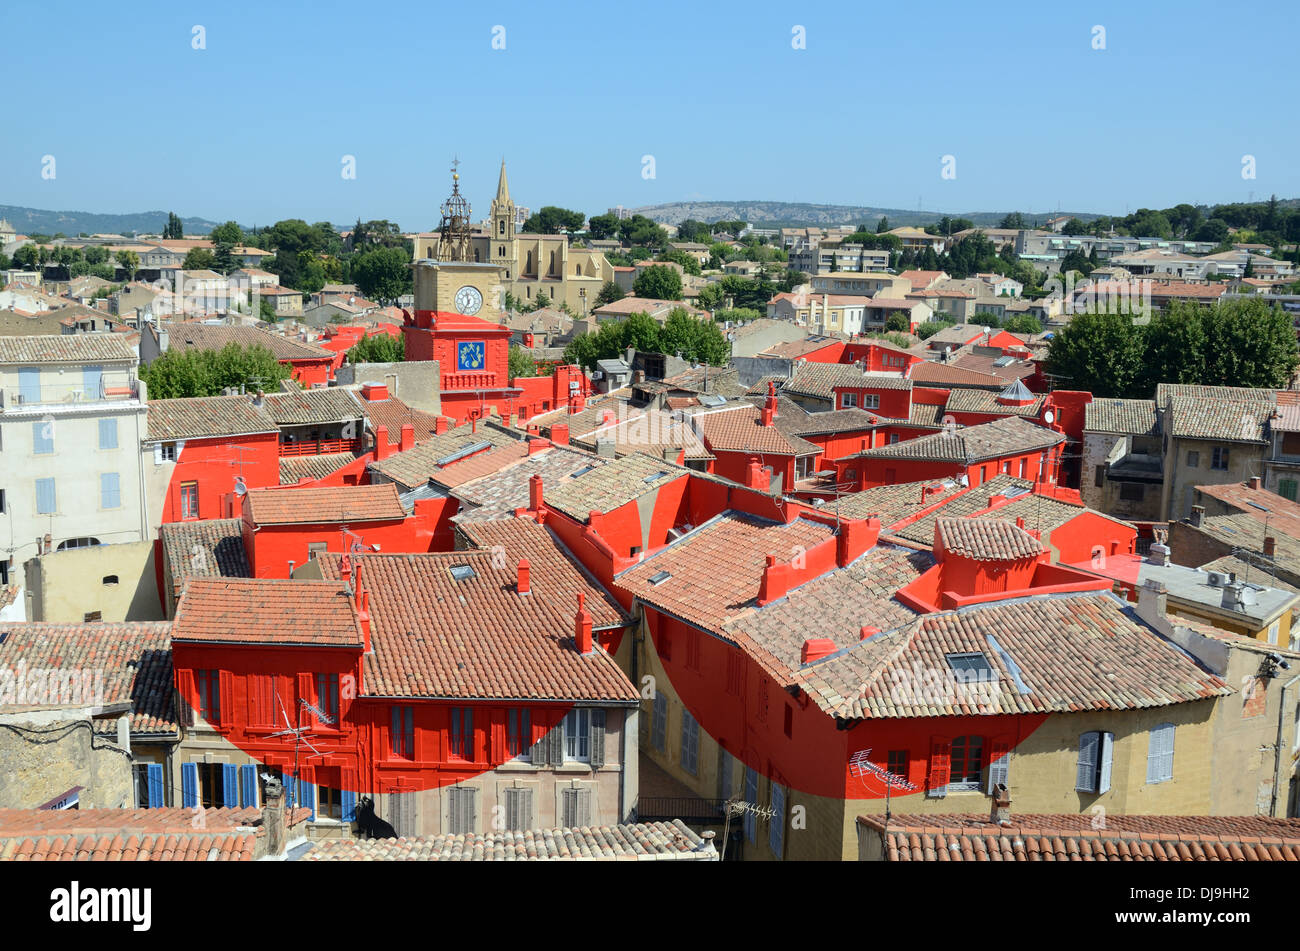 View over salon de provence painted red art installation for Mma salon de provence